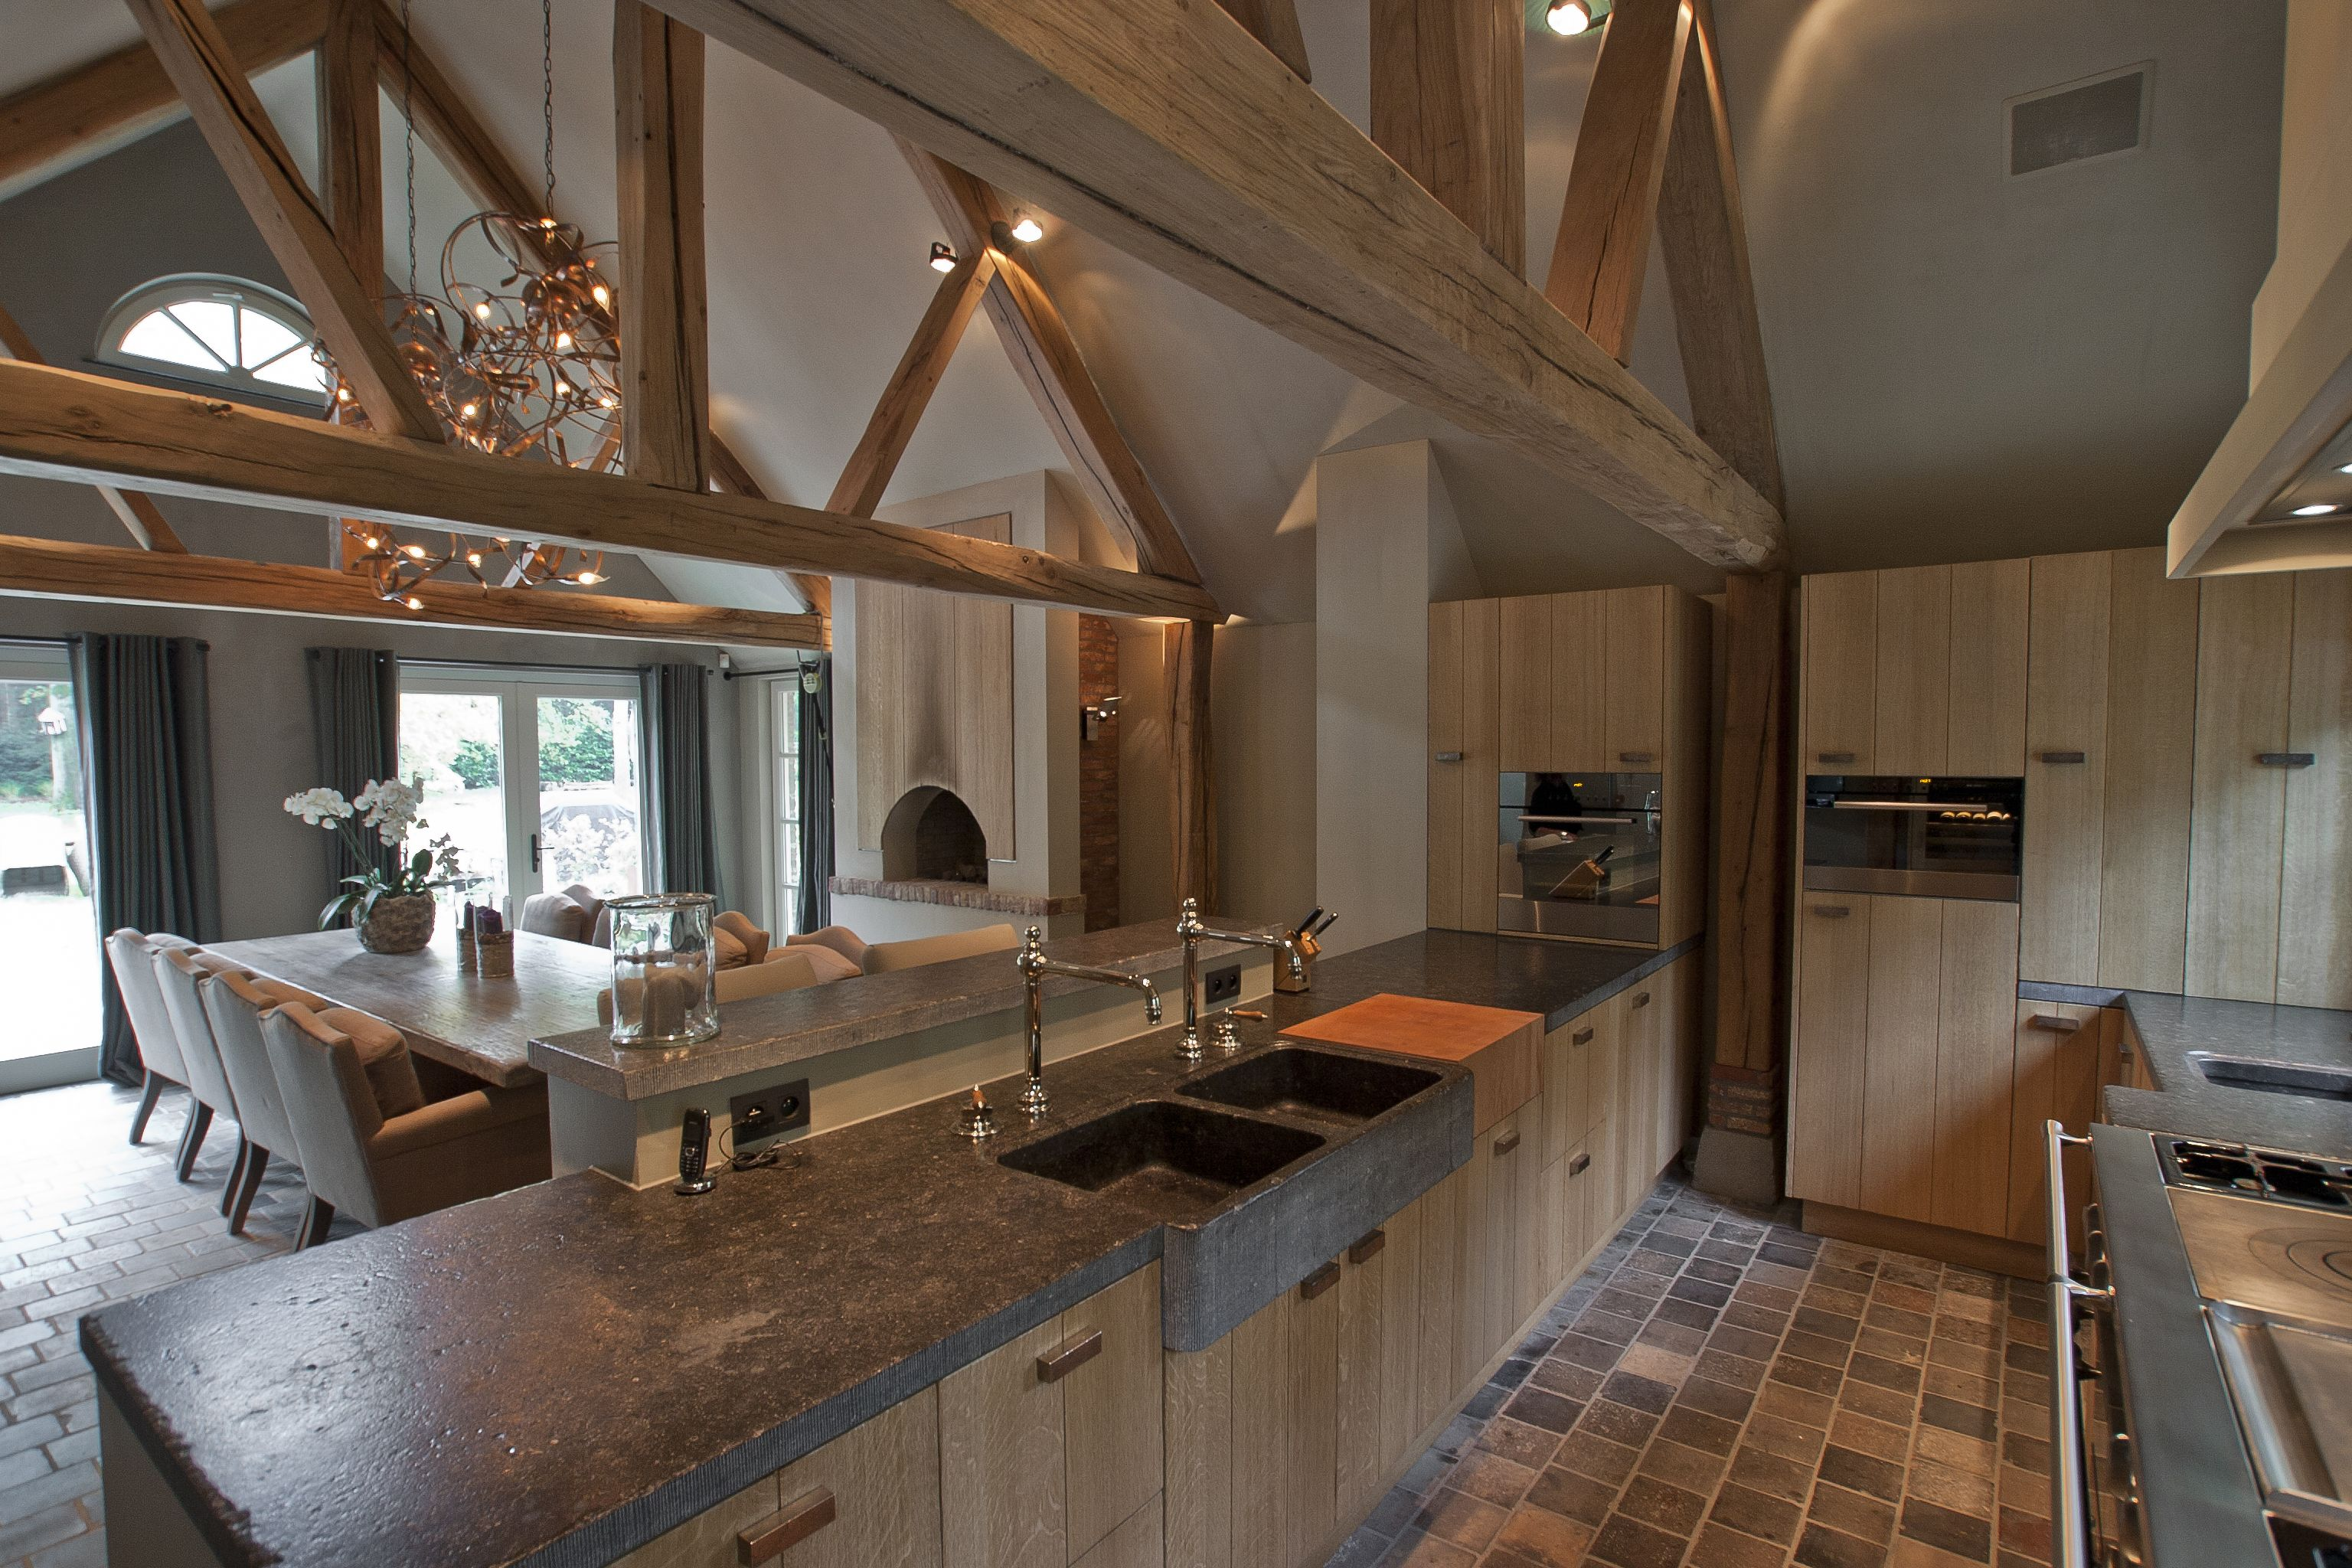 Big kitchen with diningtable and fireplace grote for Boerderij interieur ideeen